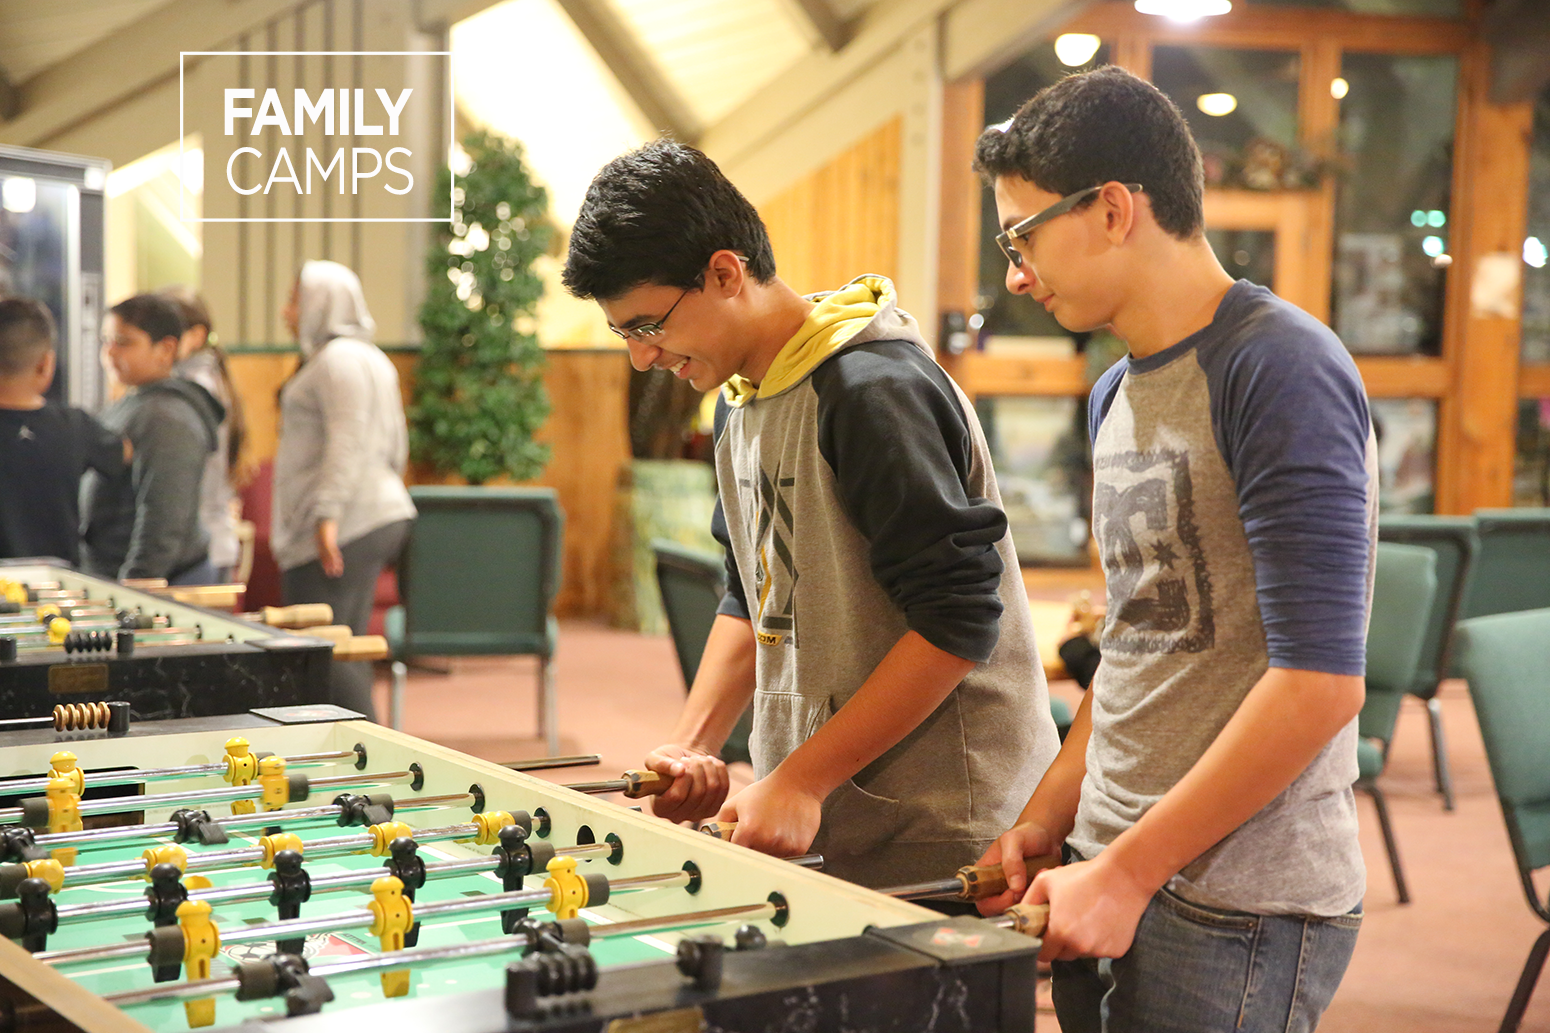 FamilyCamps